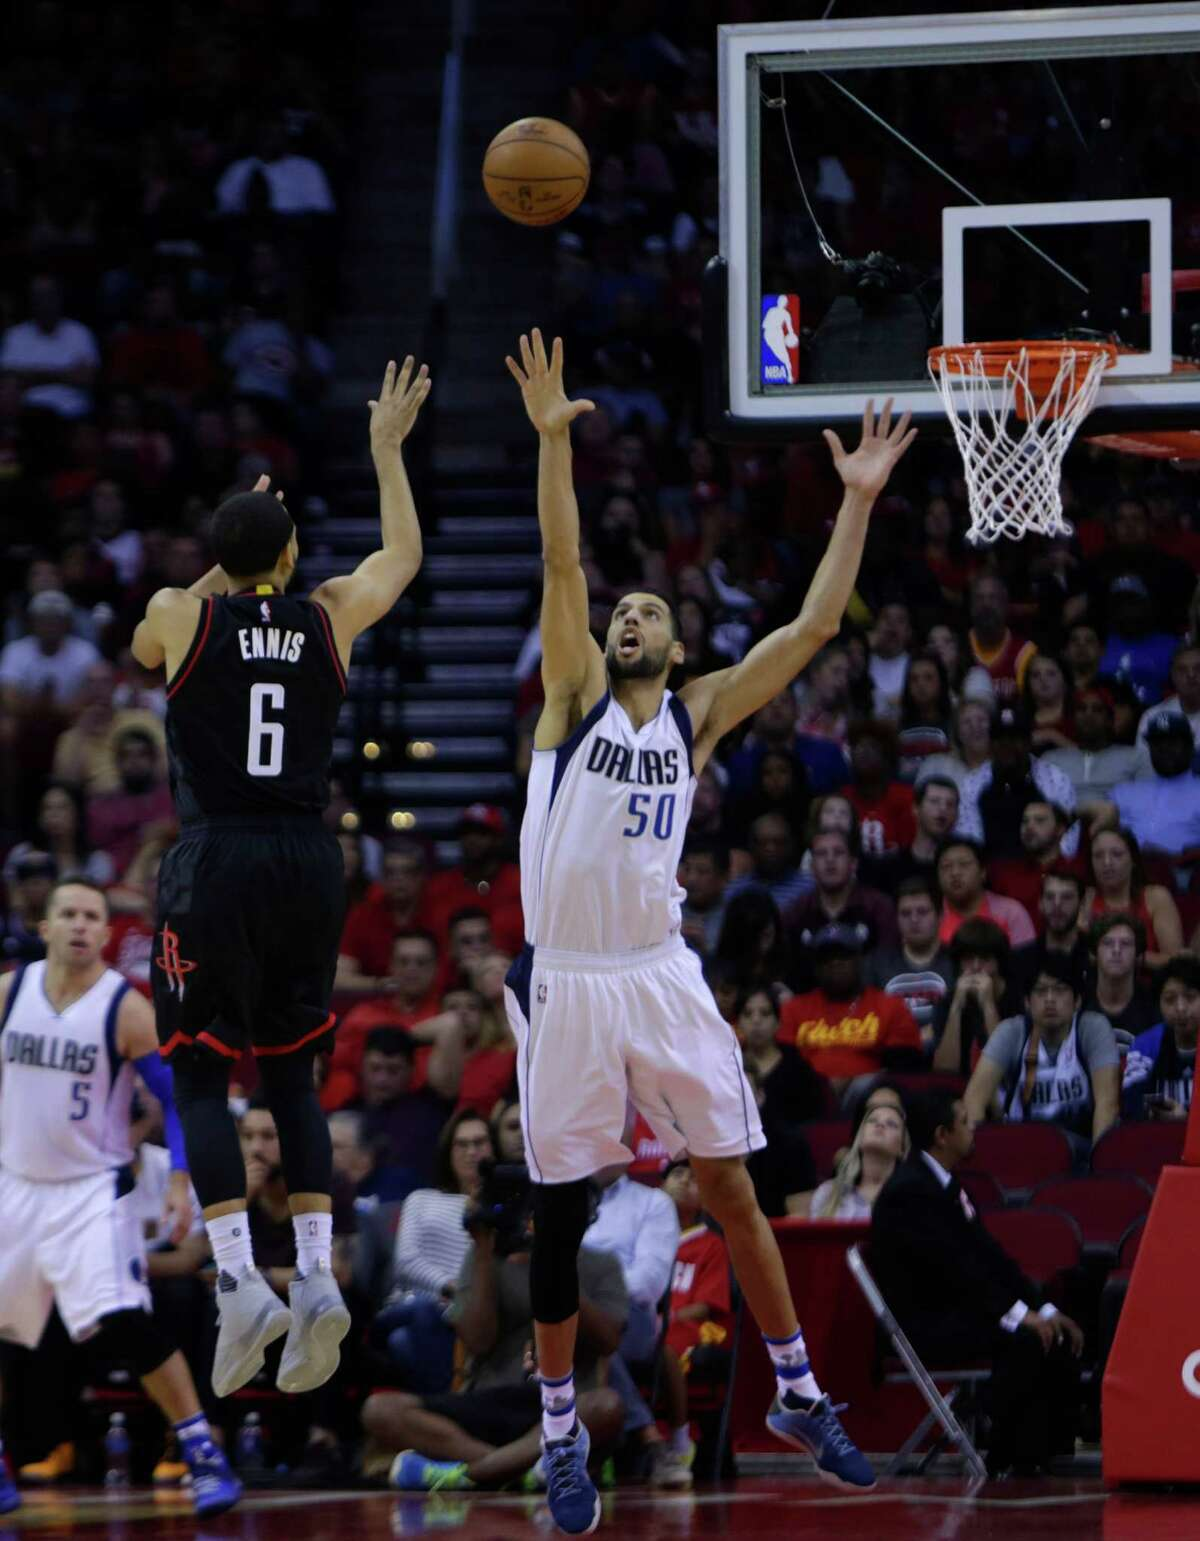 Houston Rockets guard Tyler Ennis (6) shoots over Dallas Mavericks center Salah Mejri (50) during the Houston Rockets game against the Dallas Mavericks at the Toyota Center, Sunday, Oct. 30, 2016, in Houston.